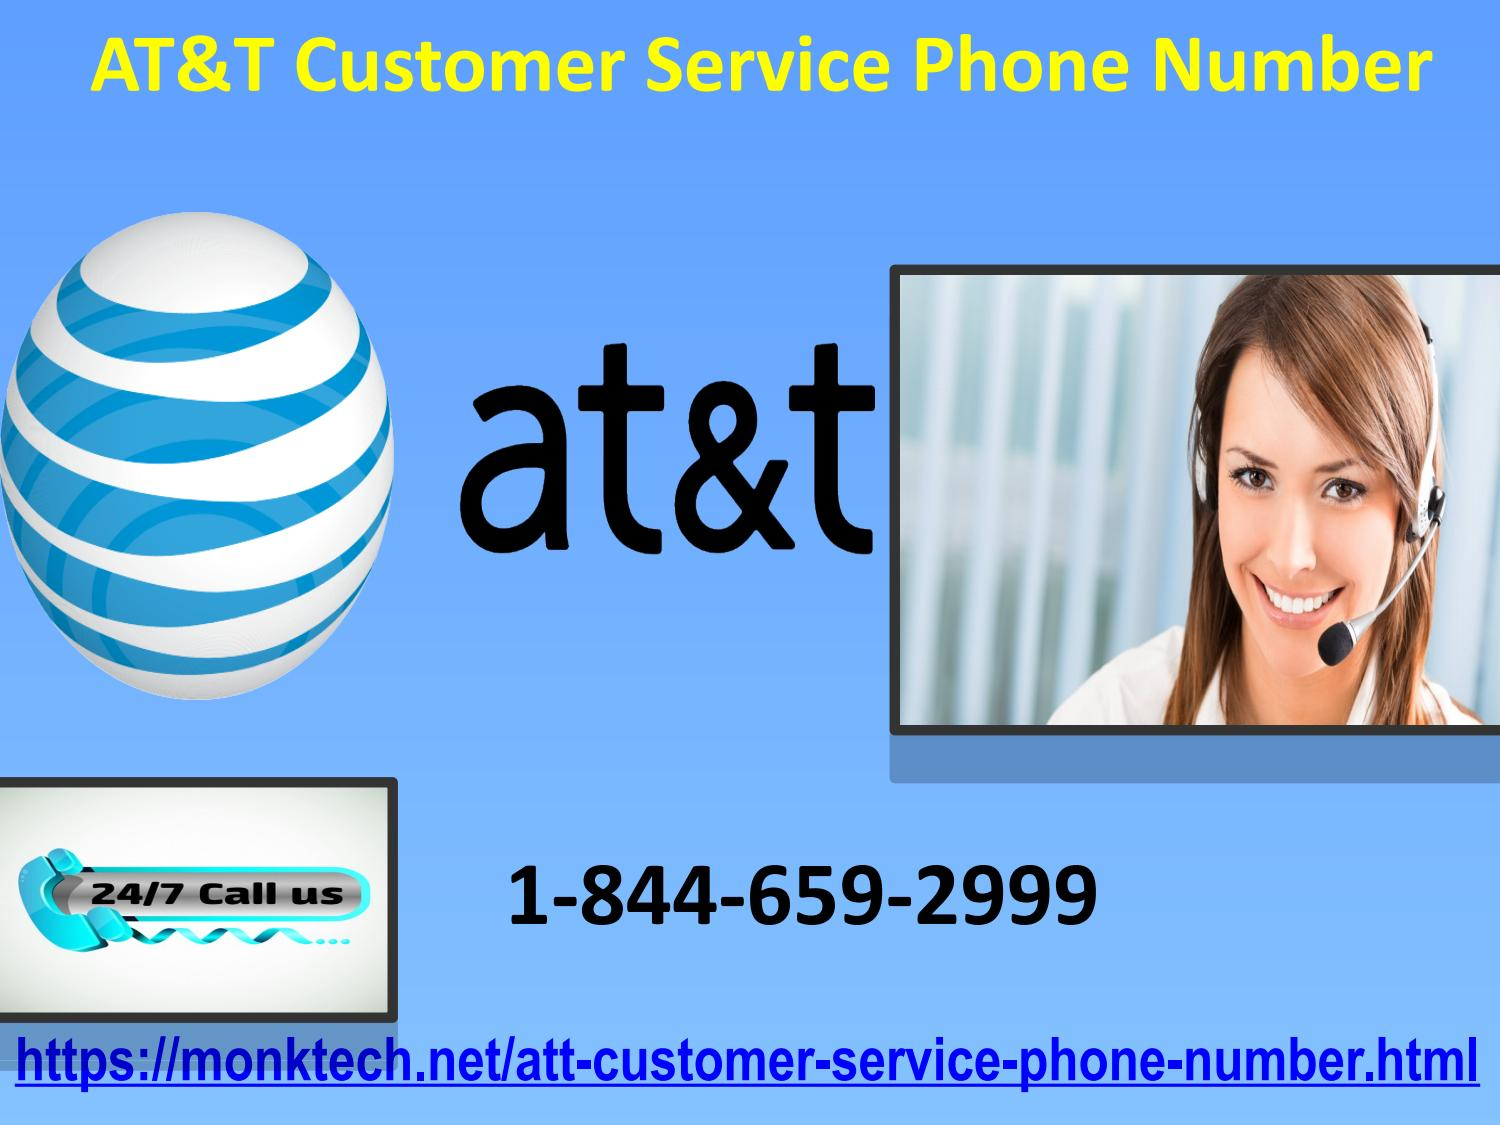 at u0026t customer service phone number 1-844-659-2999 is 24  7 reachable by toms roy01234